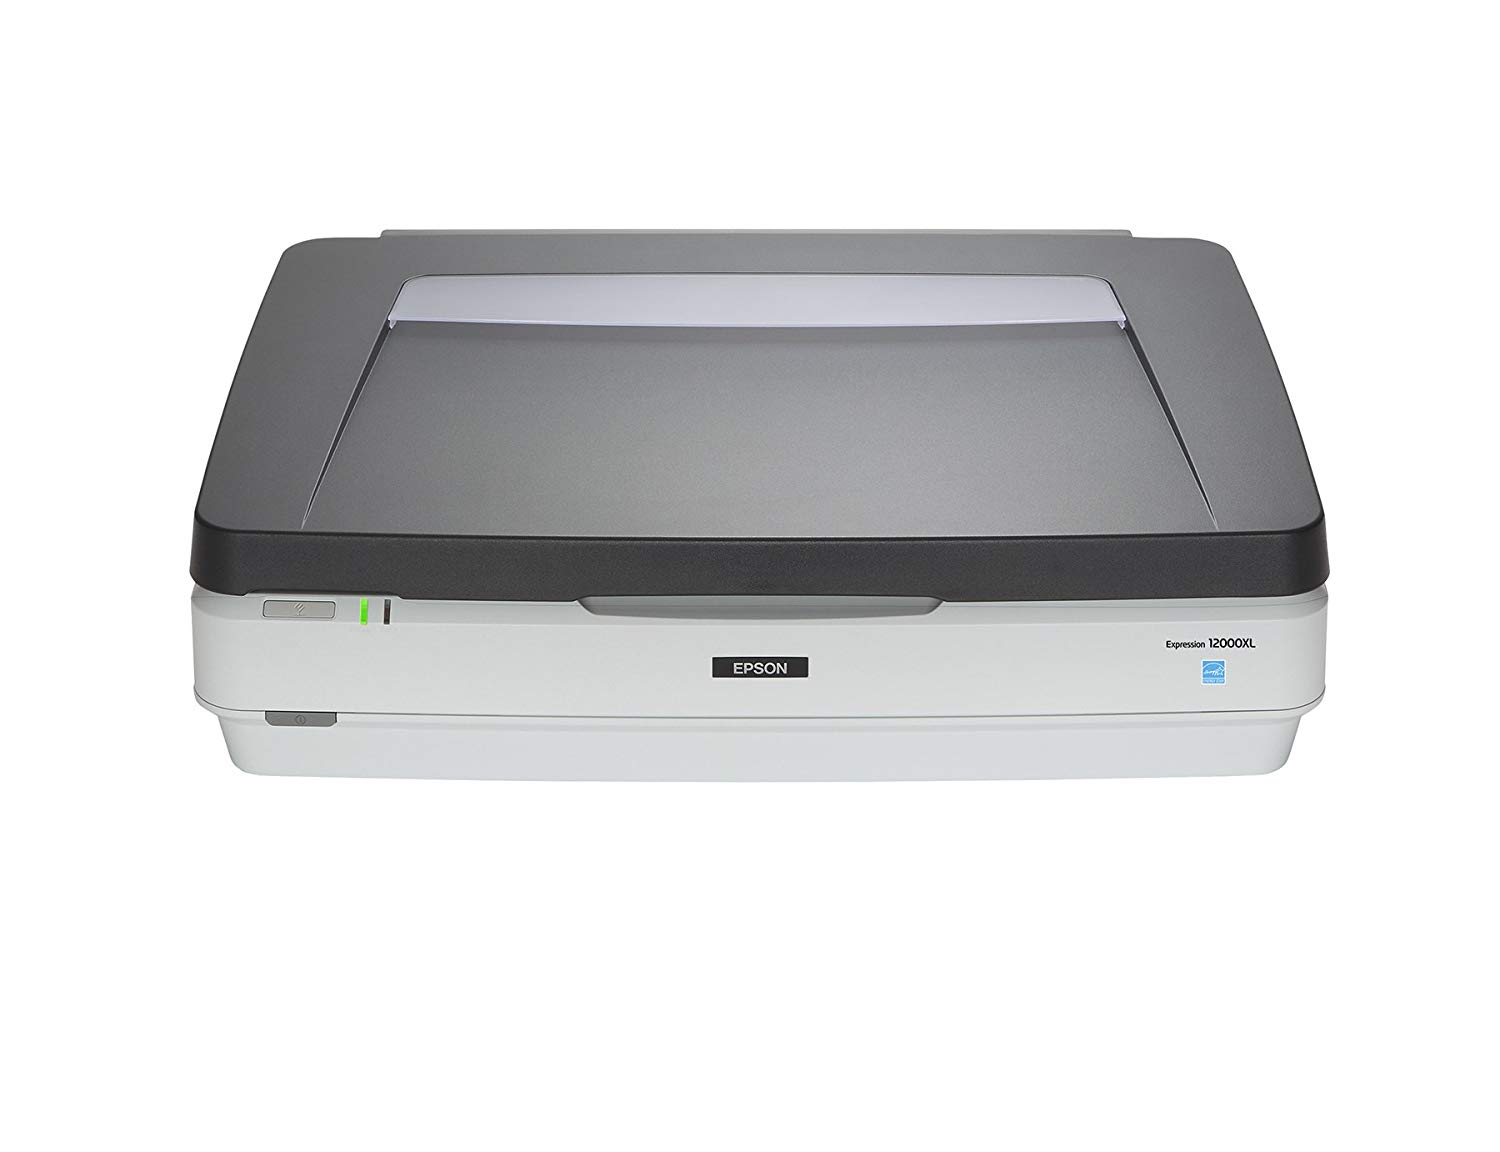 Epson Expression Flatbed Scanner, 12000XL-PH